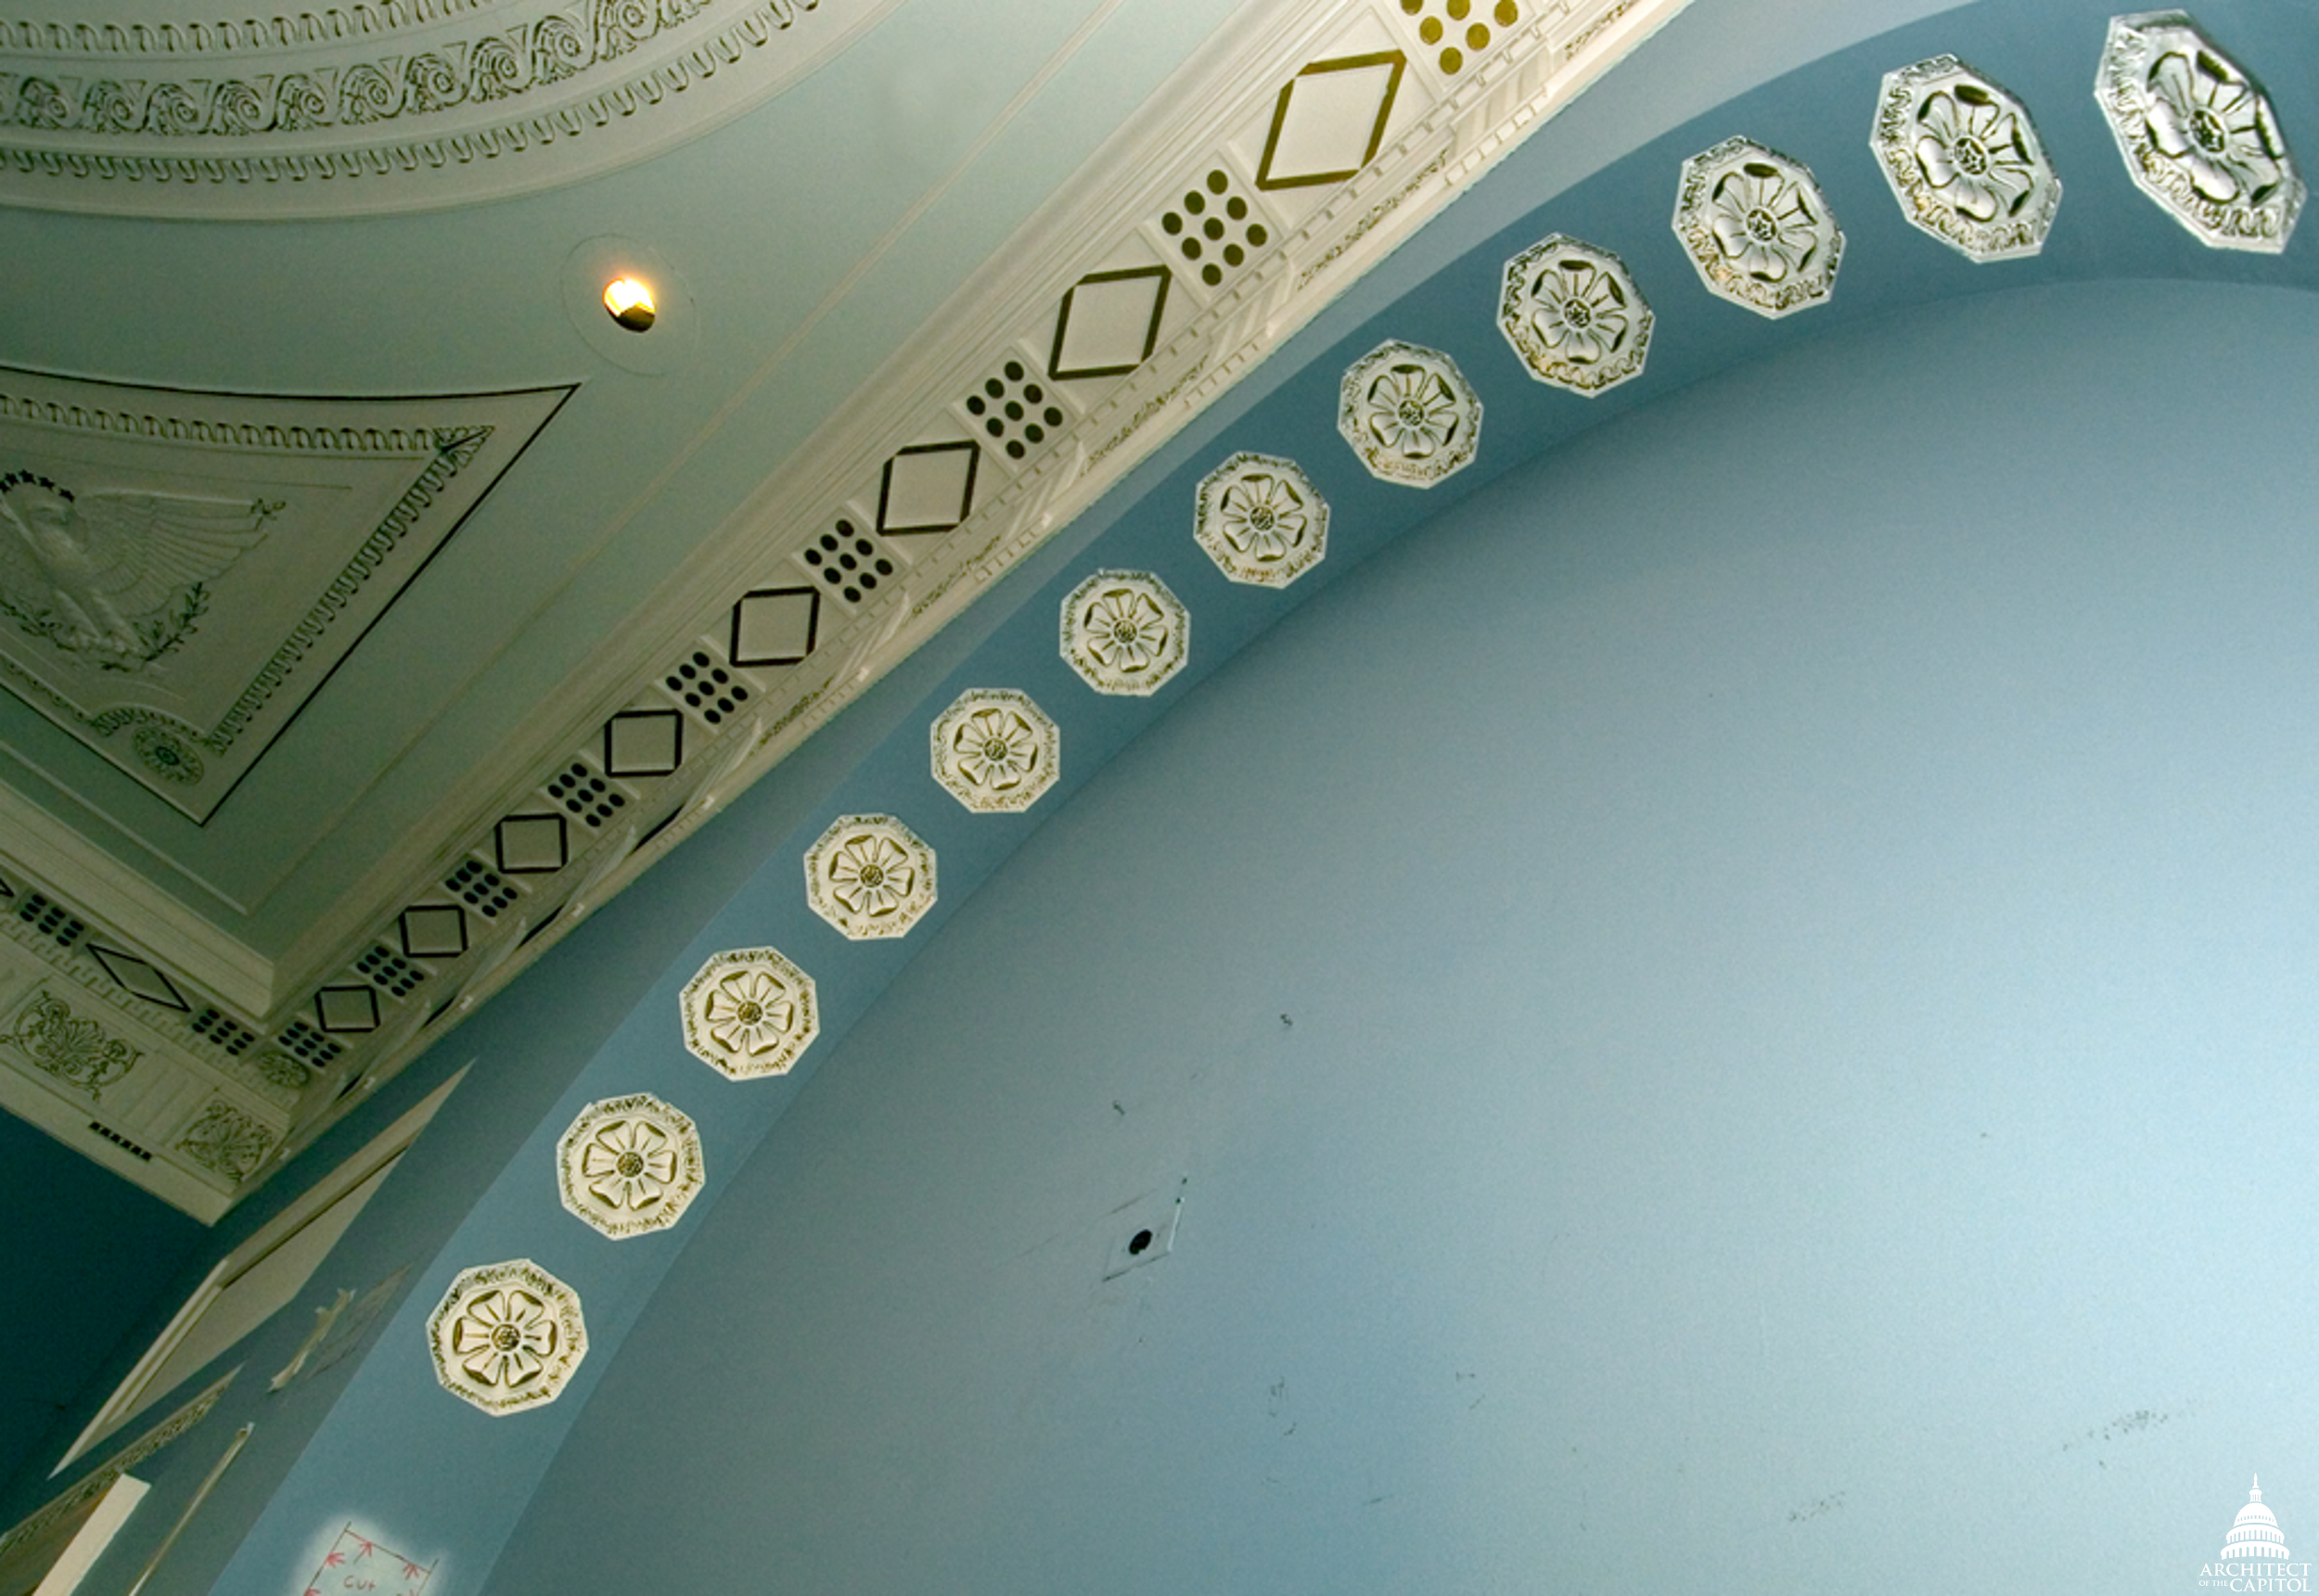 Example of decorative ceiling in the Longworth.